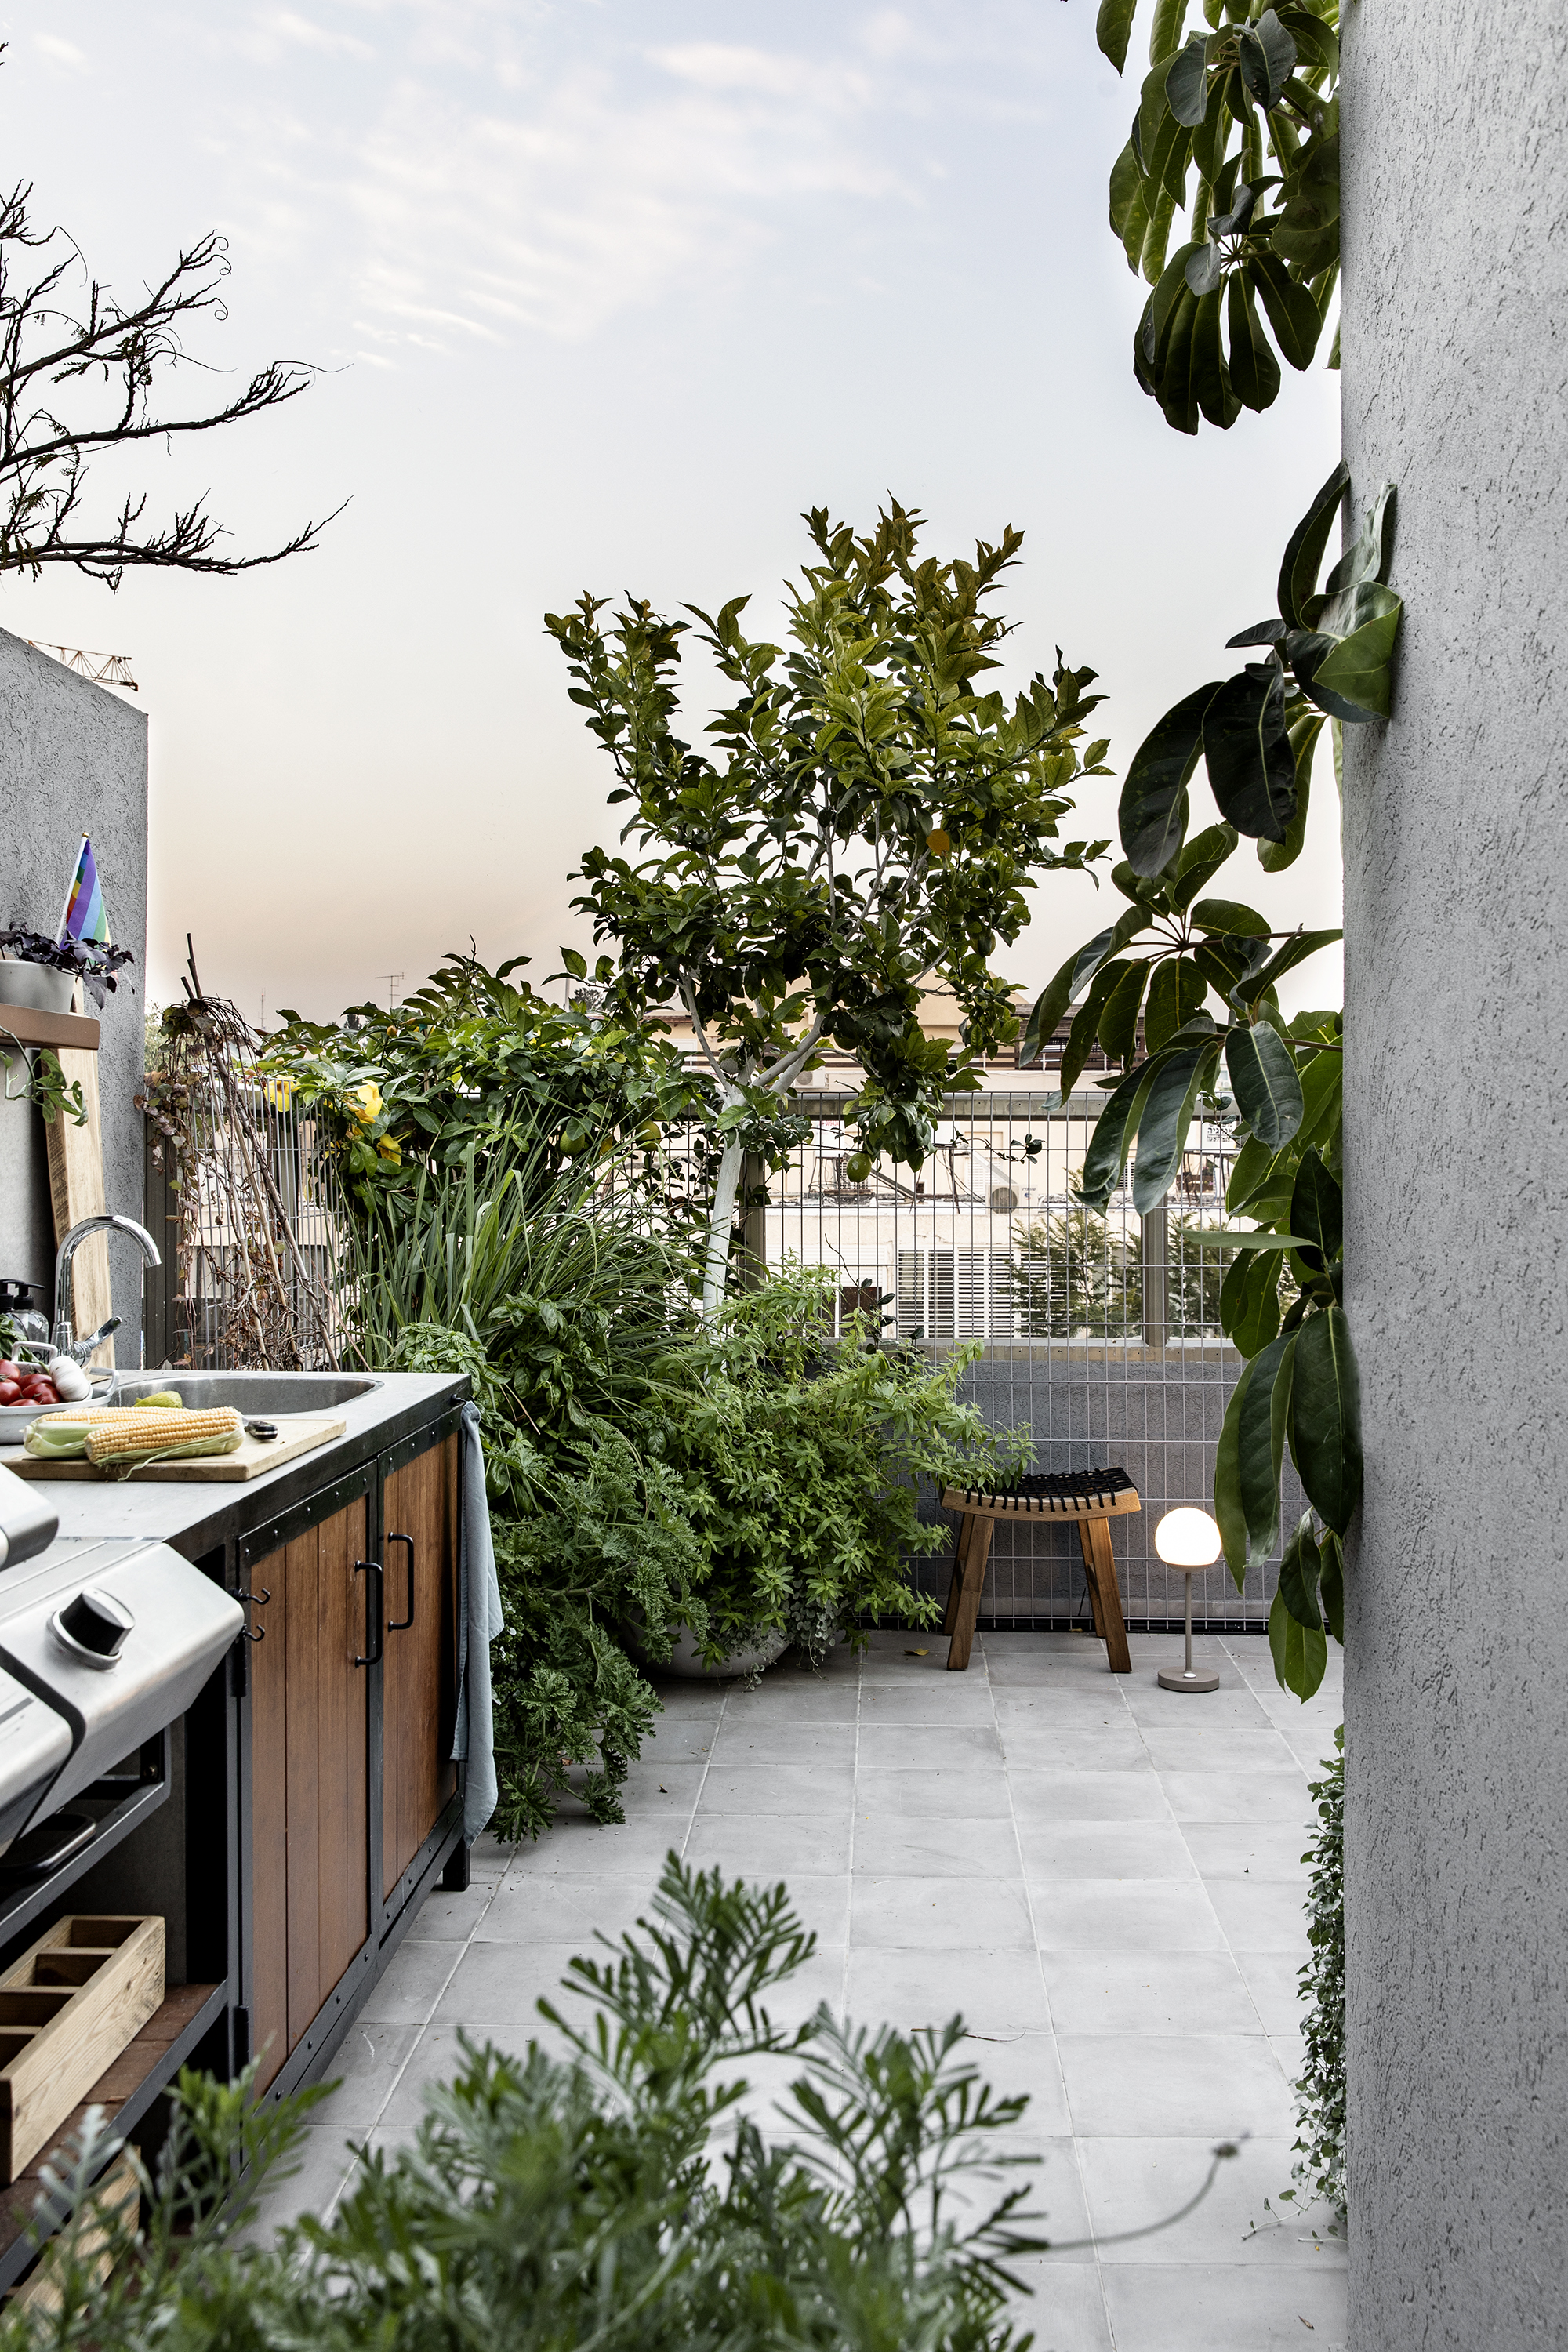 Rooftop apt R&A by Vered Bonfiglioli